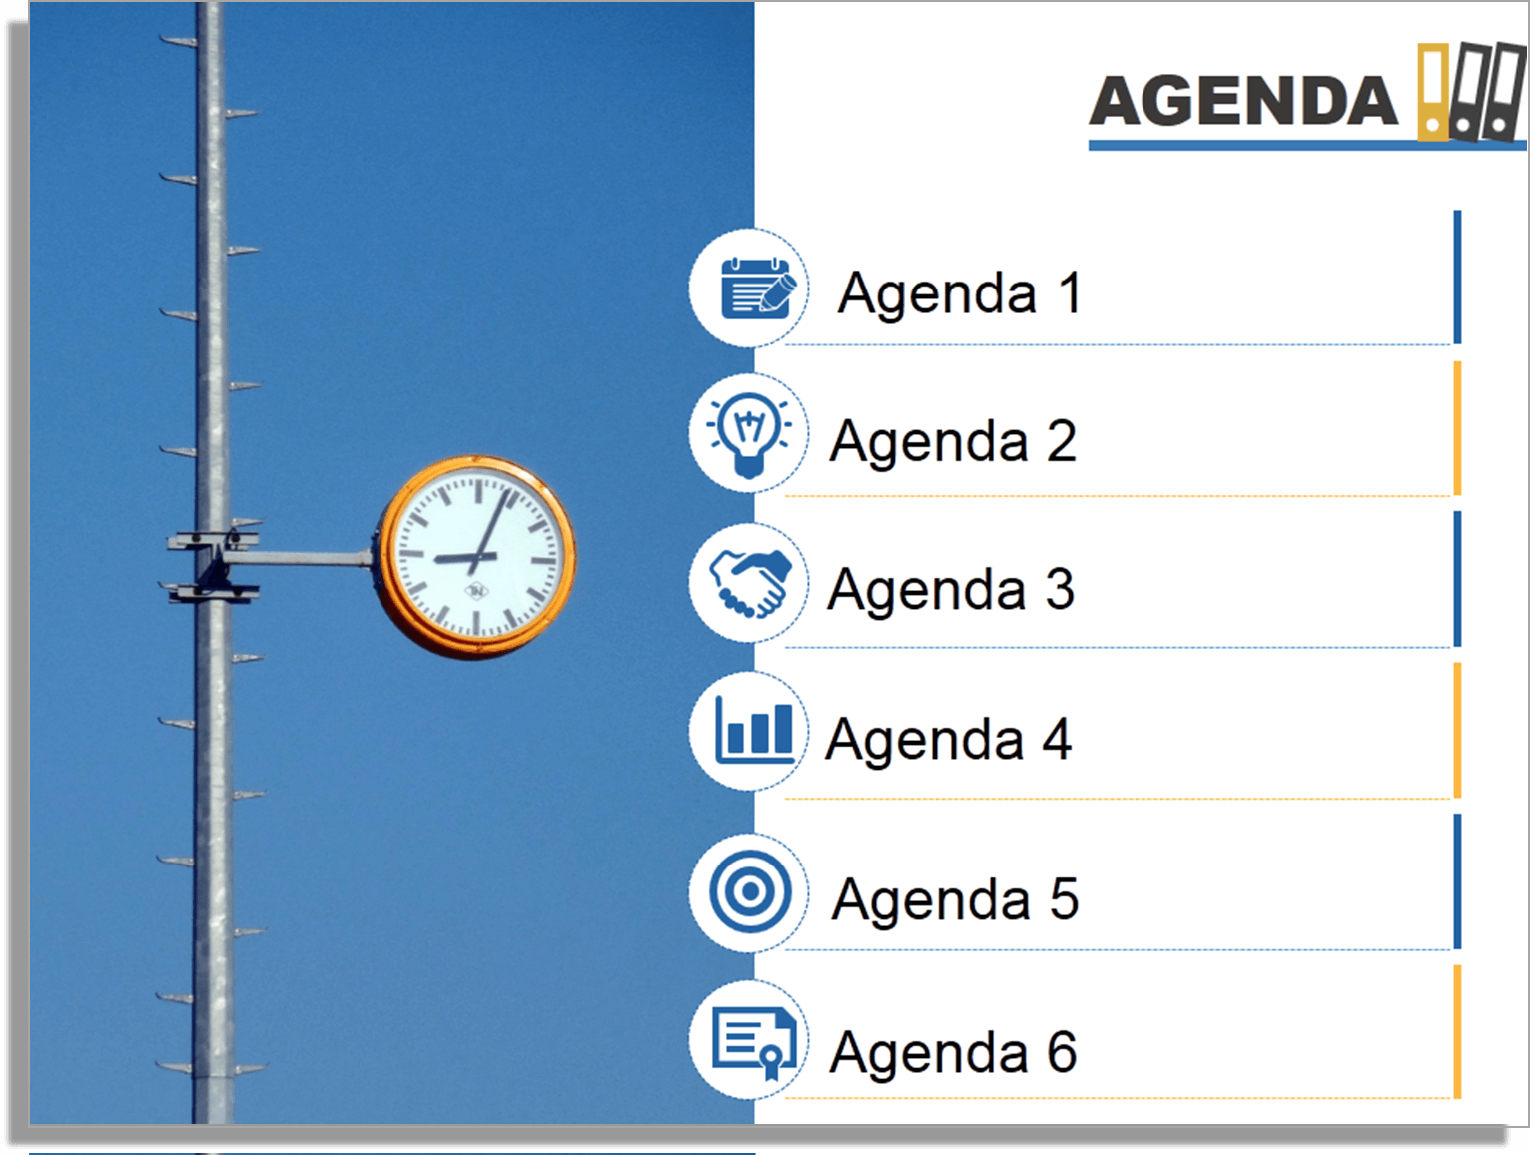 how to create a fantastic powerpoint agenda slide template in 5 using images and icons to create awesome agenda slides